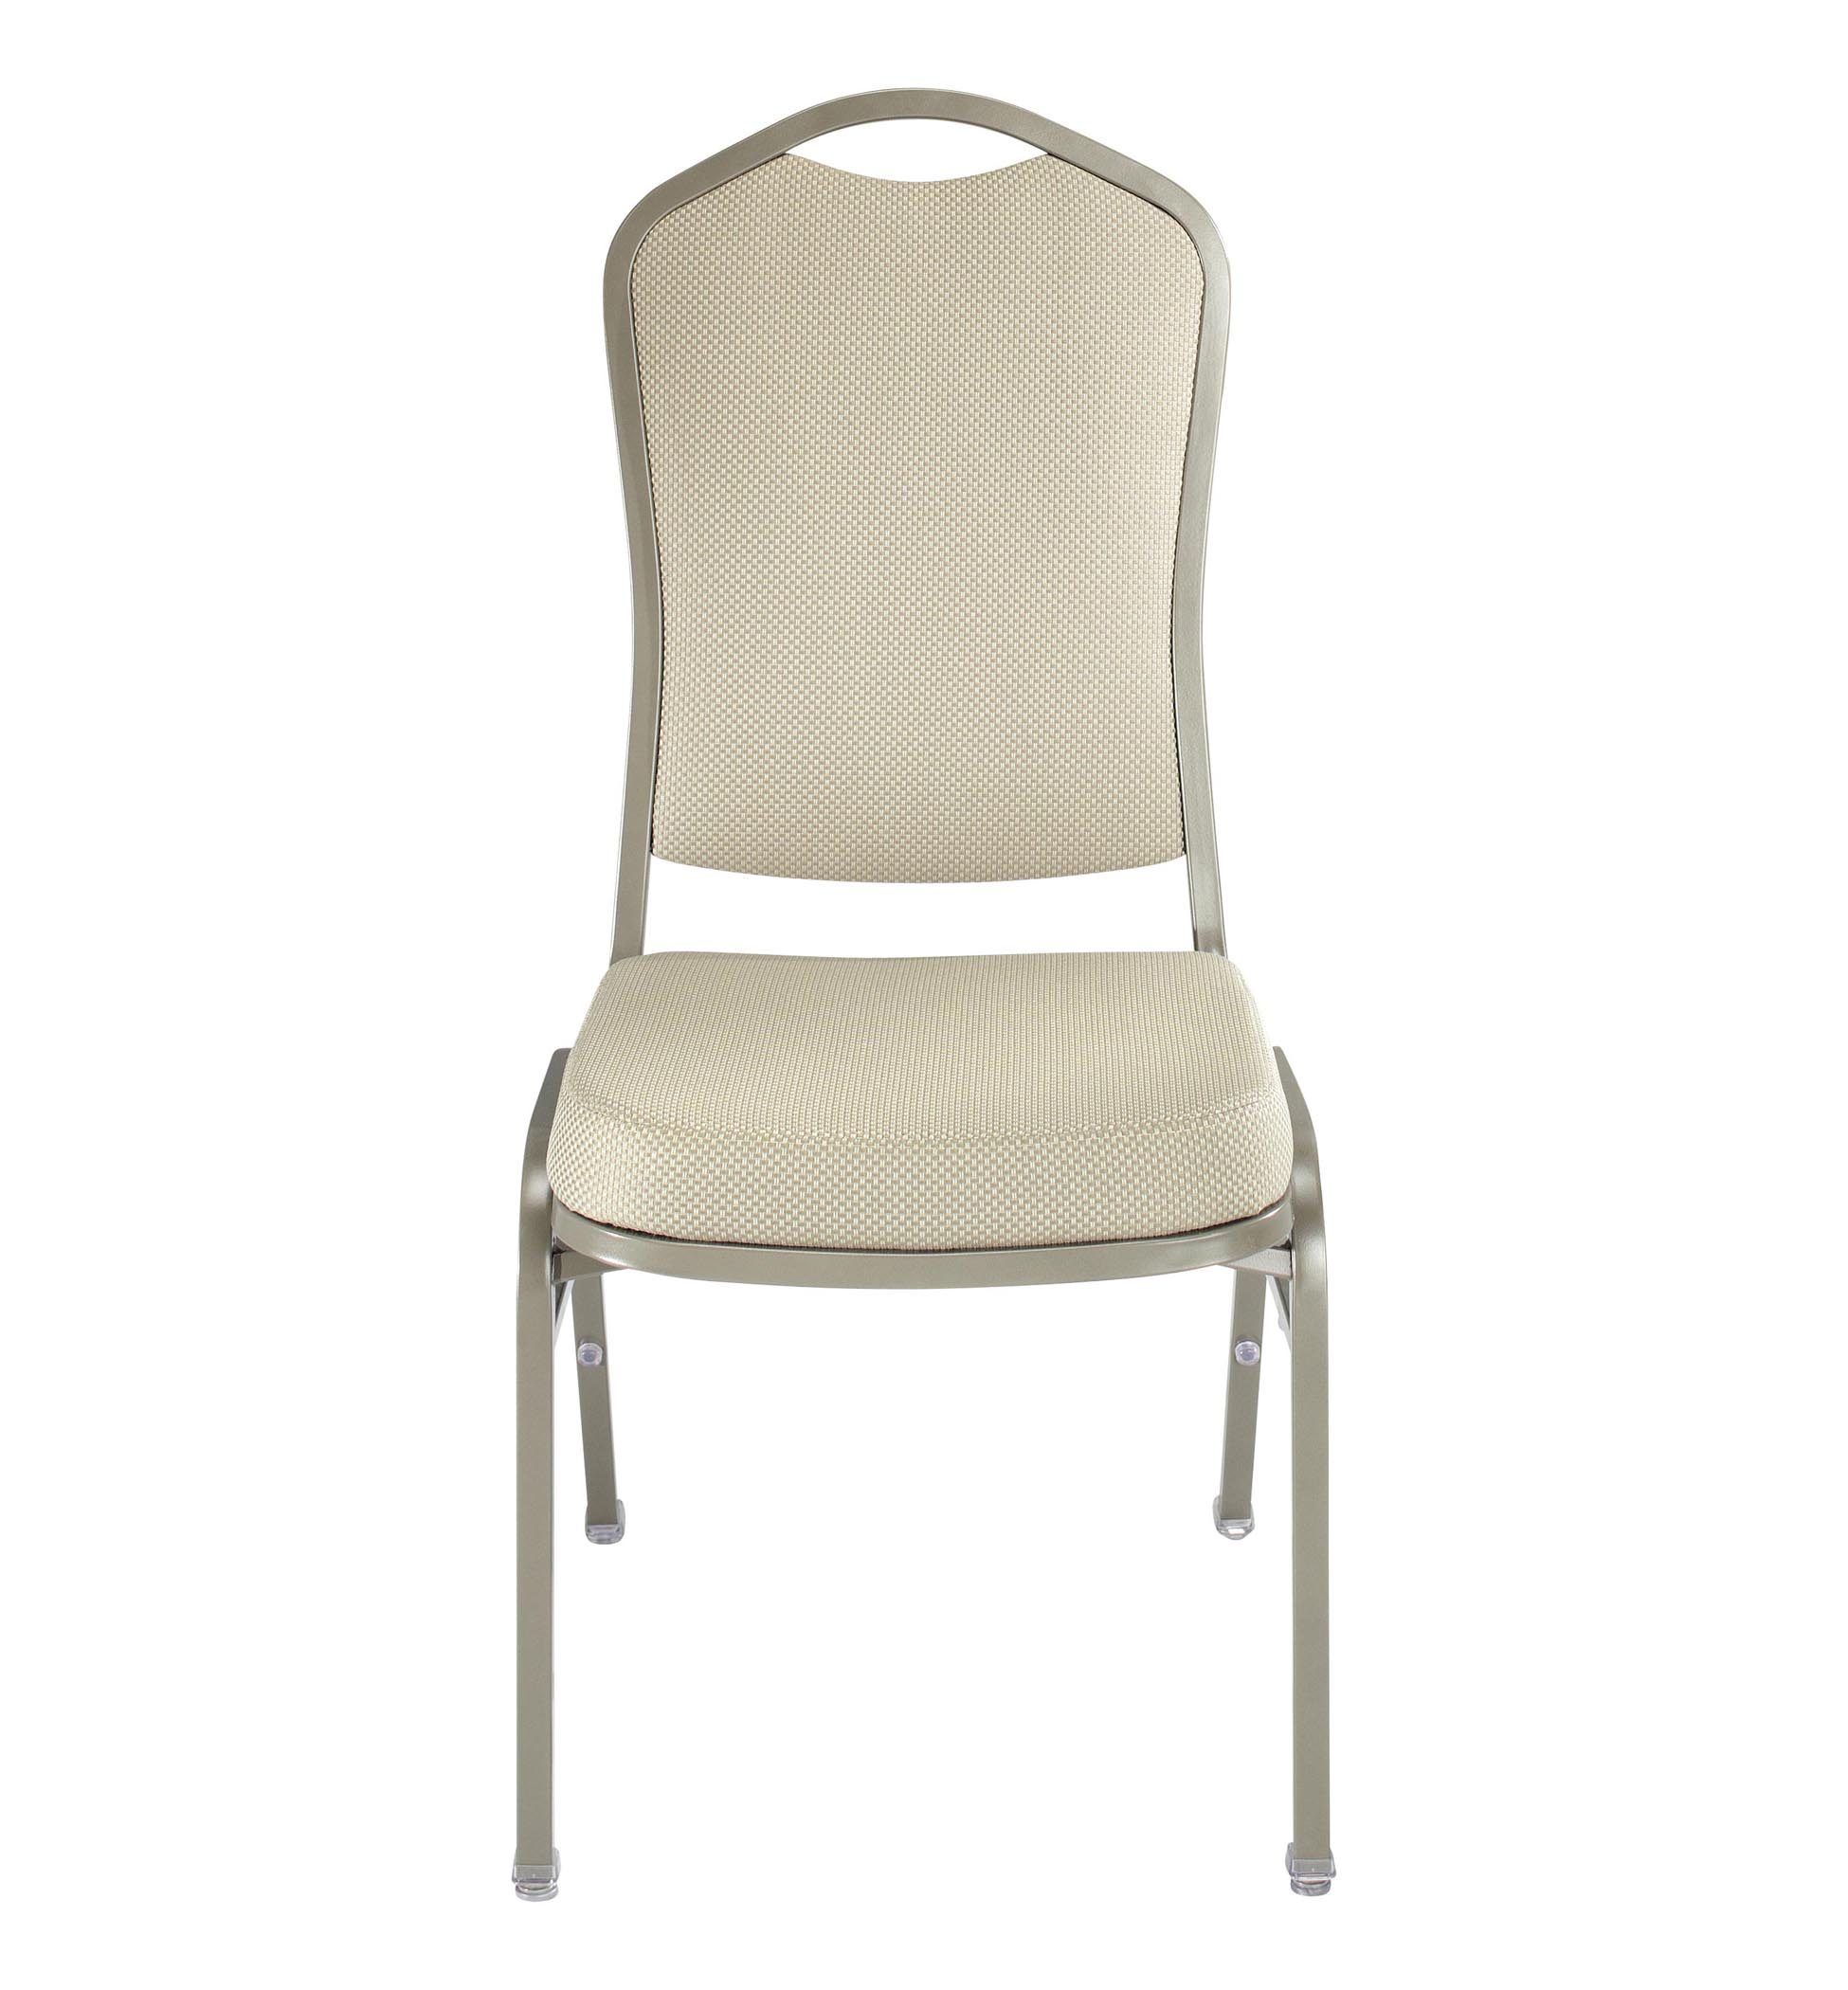 shelby williams chairs steel chair for sale philippines 5142p banquet